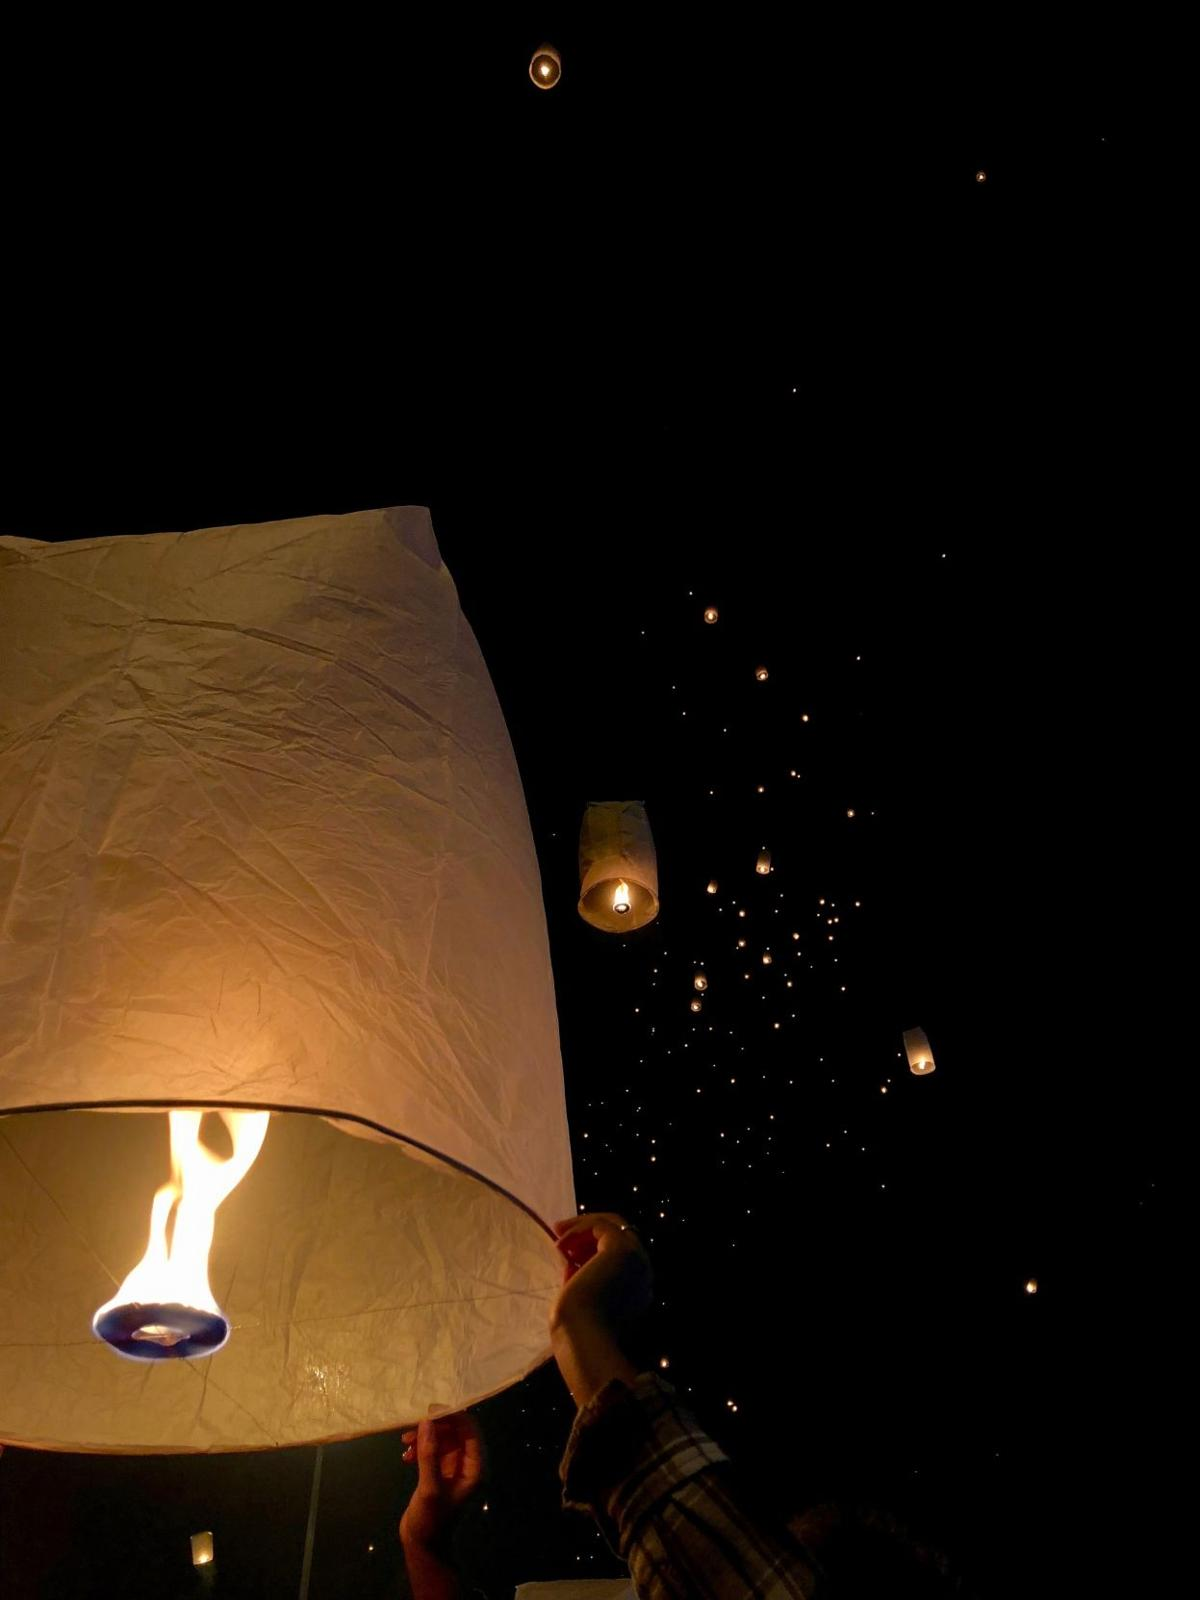 This is also in Thailand when we let go of lanterns in the